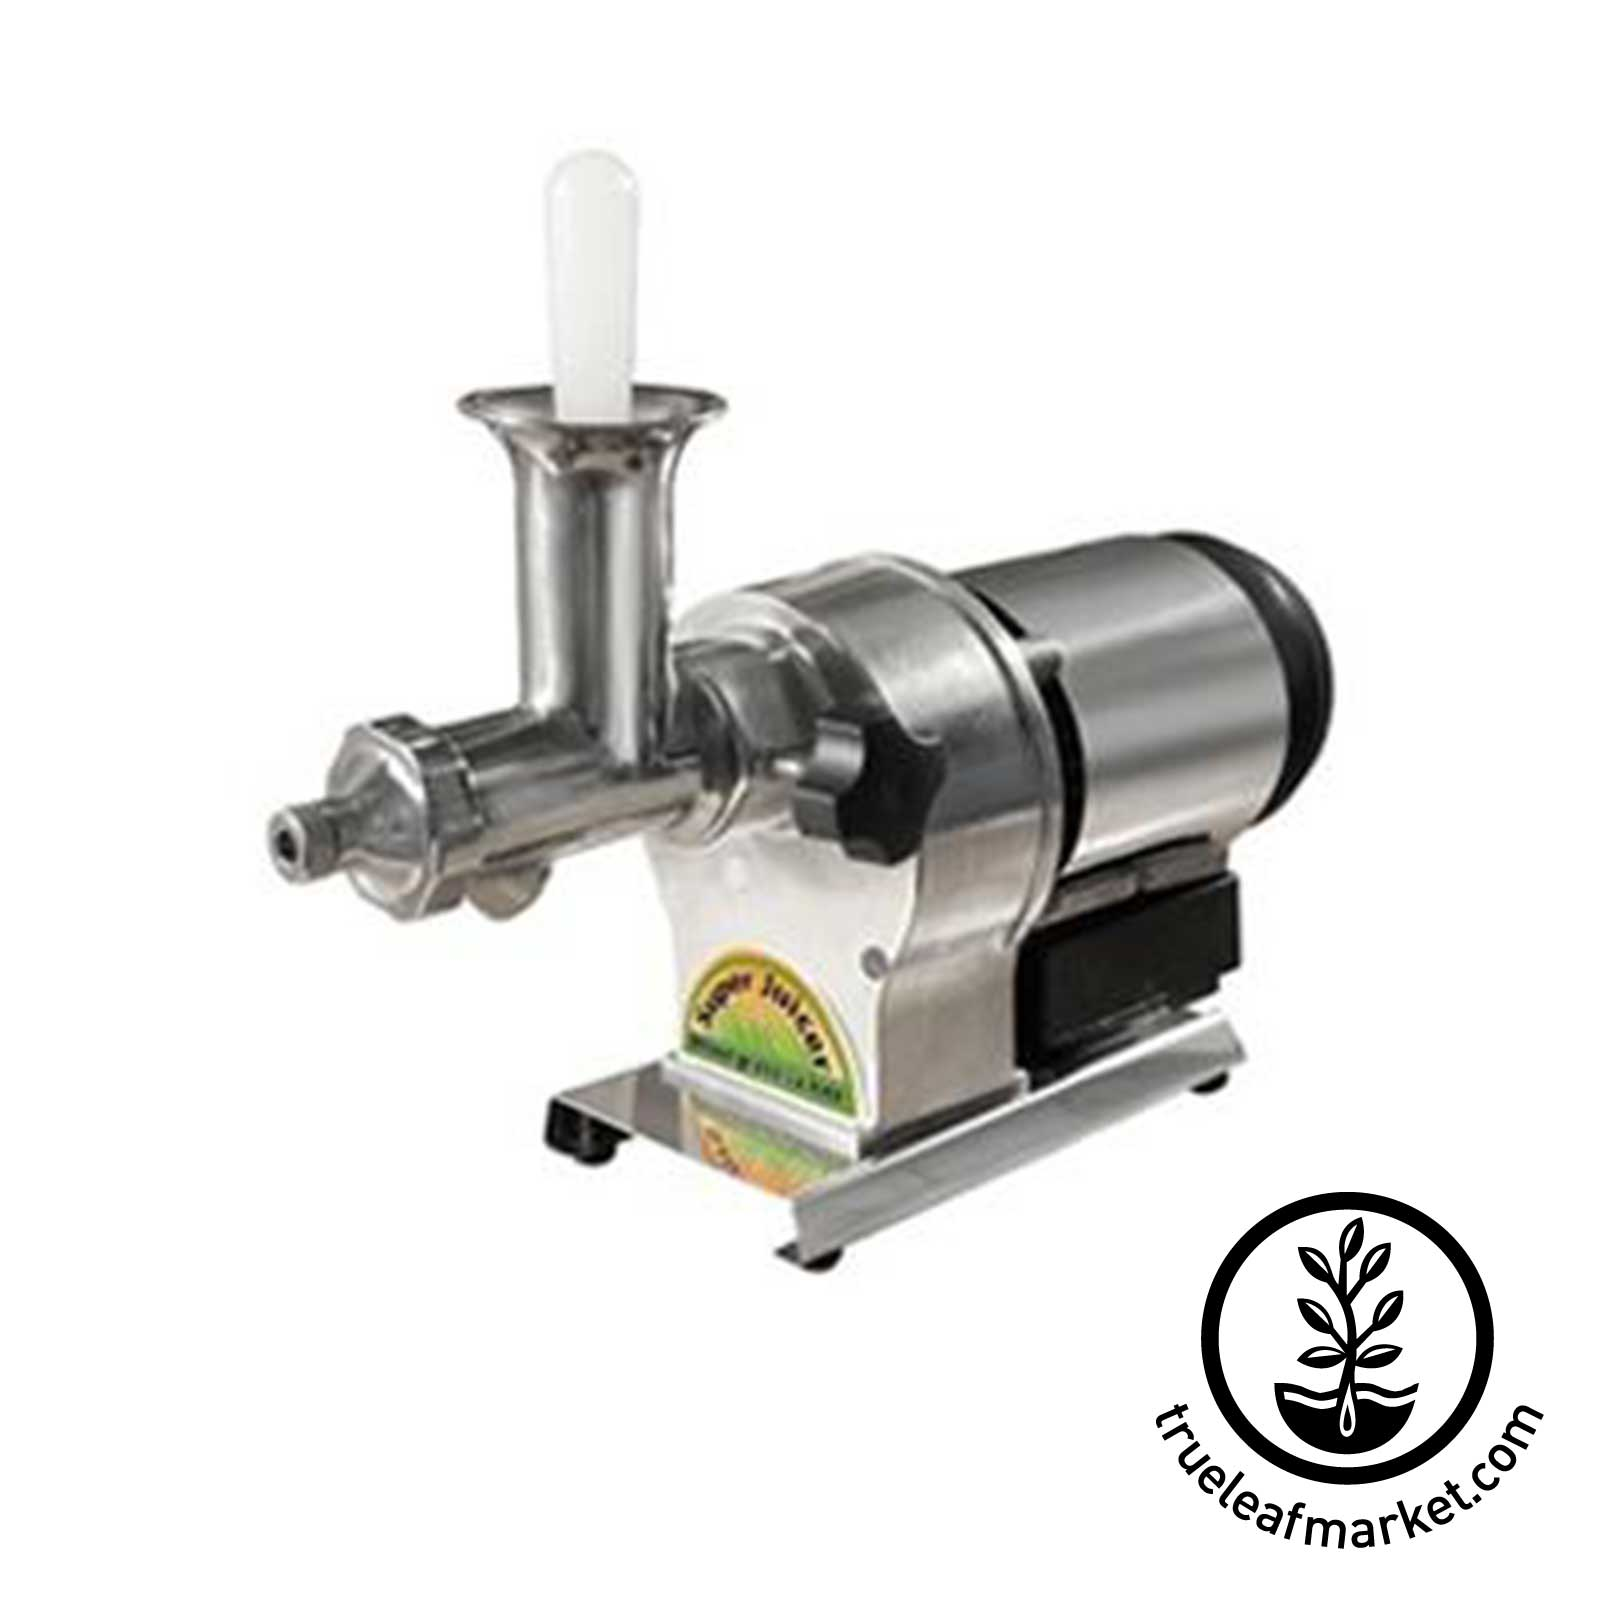 Samson Super Juicer - Commercial Grade Samson, Super Juicer, Wheatgrass Juicer, juice extractor, commercial juicer